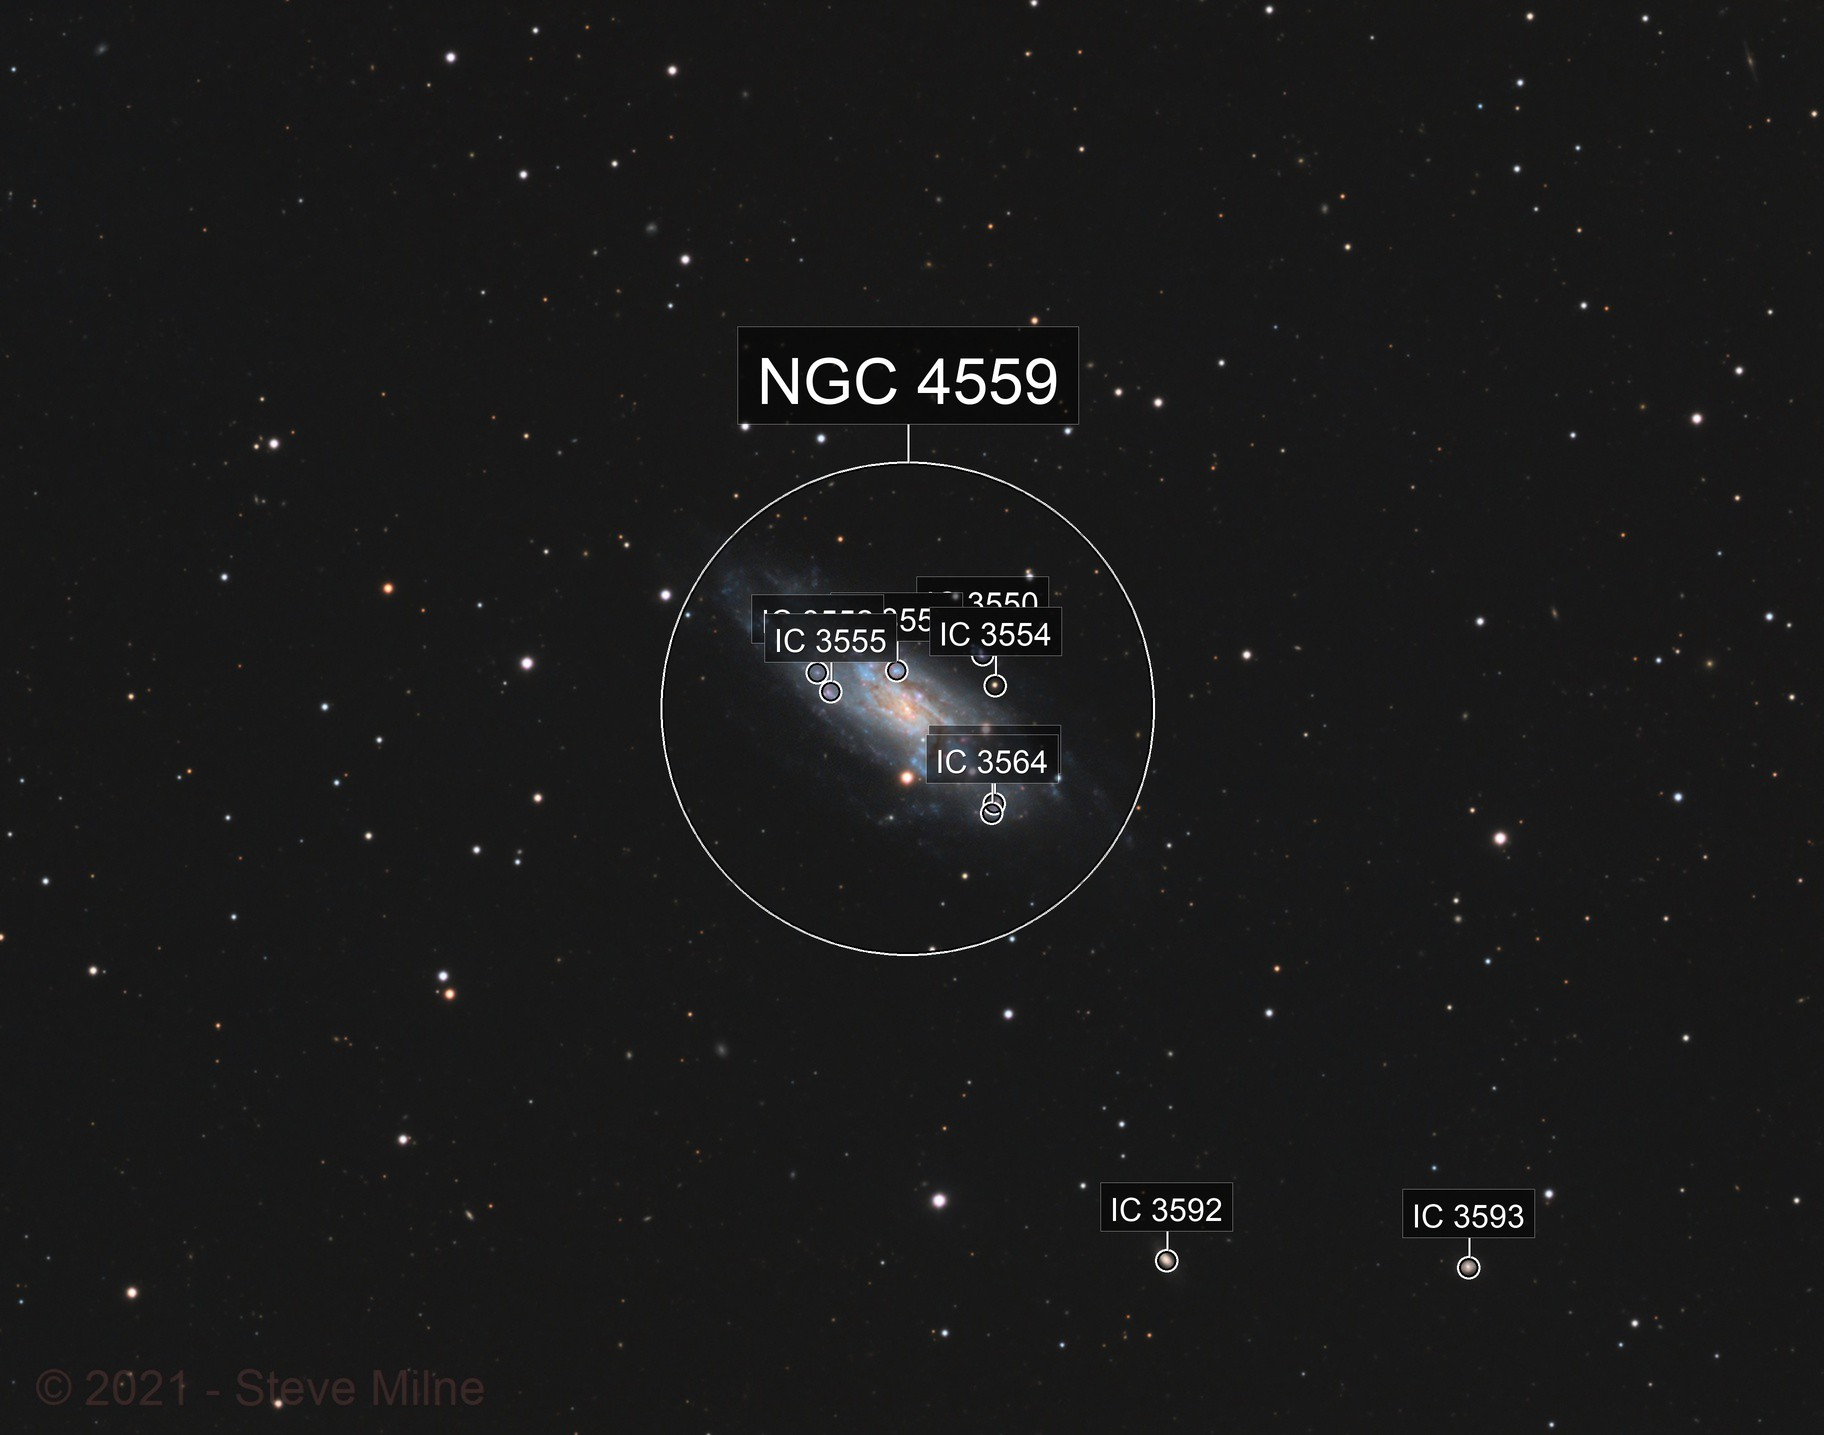 NGC 4559 (Caldwell 36) in Coma Berenices